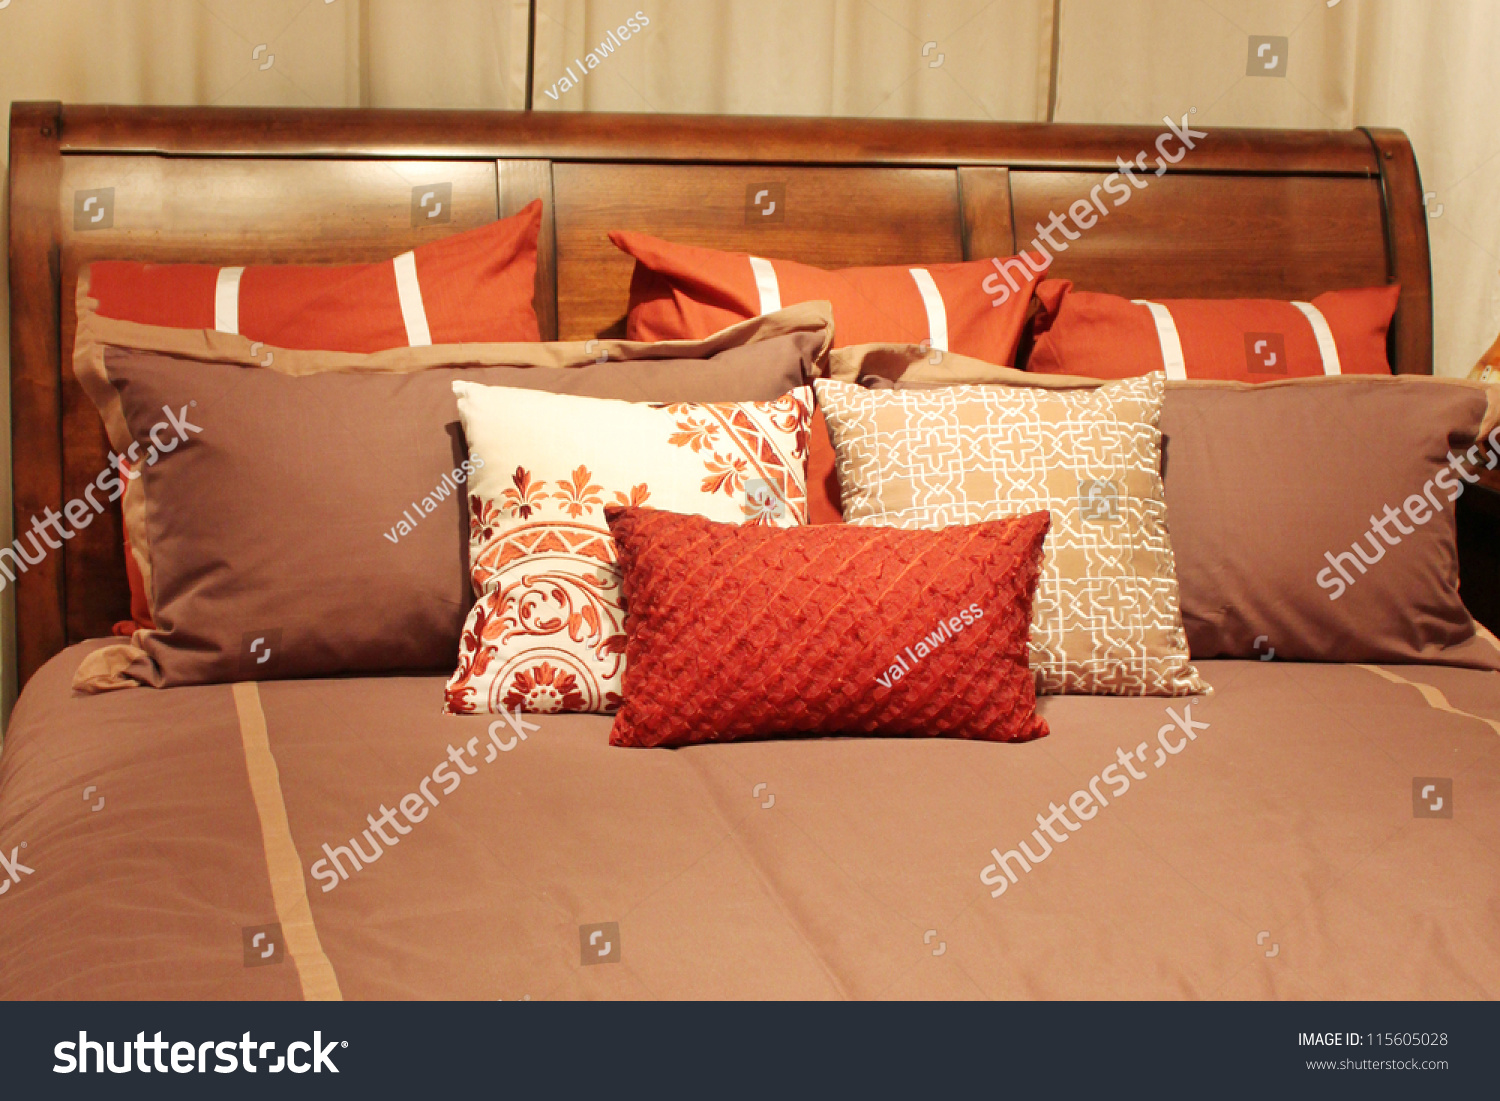 Pillows On Bed Stock Photo 115605028 - Shutterstock